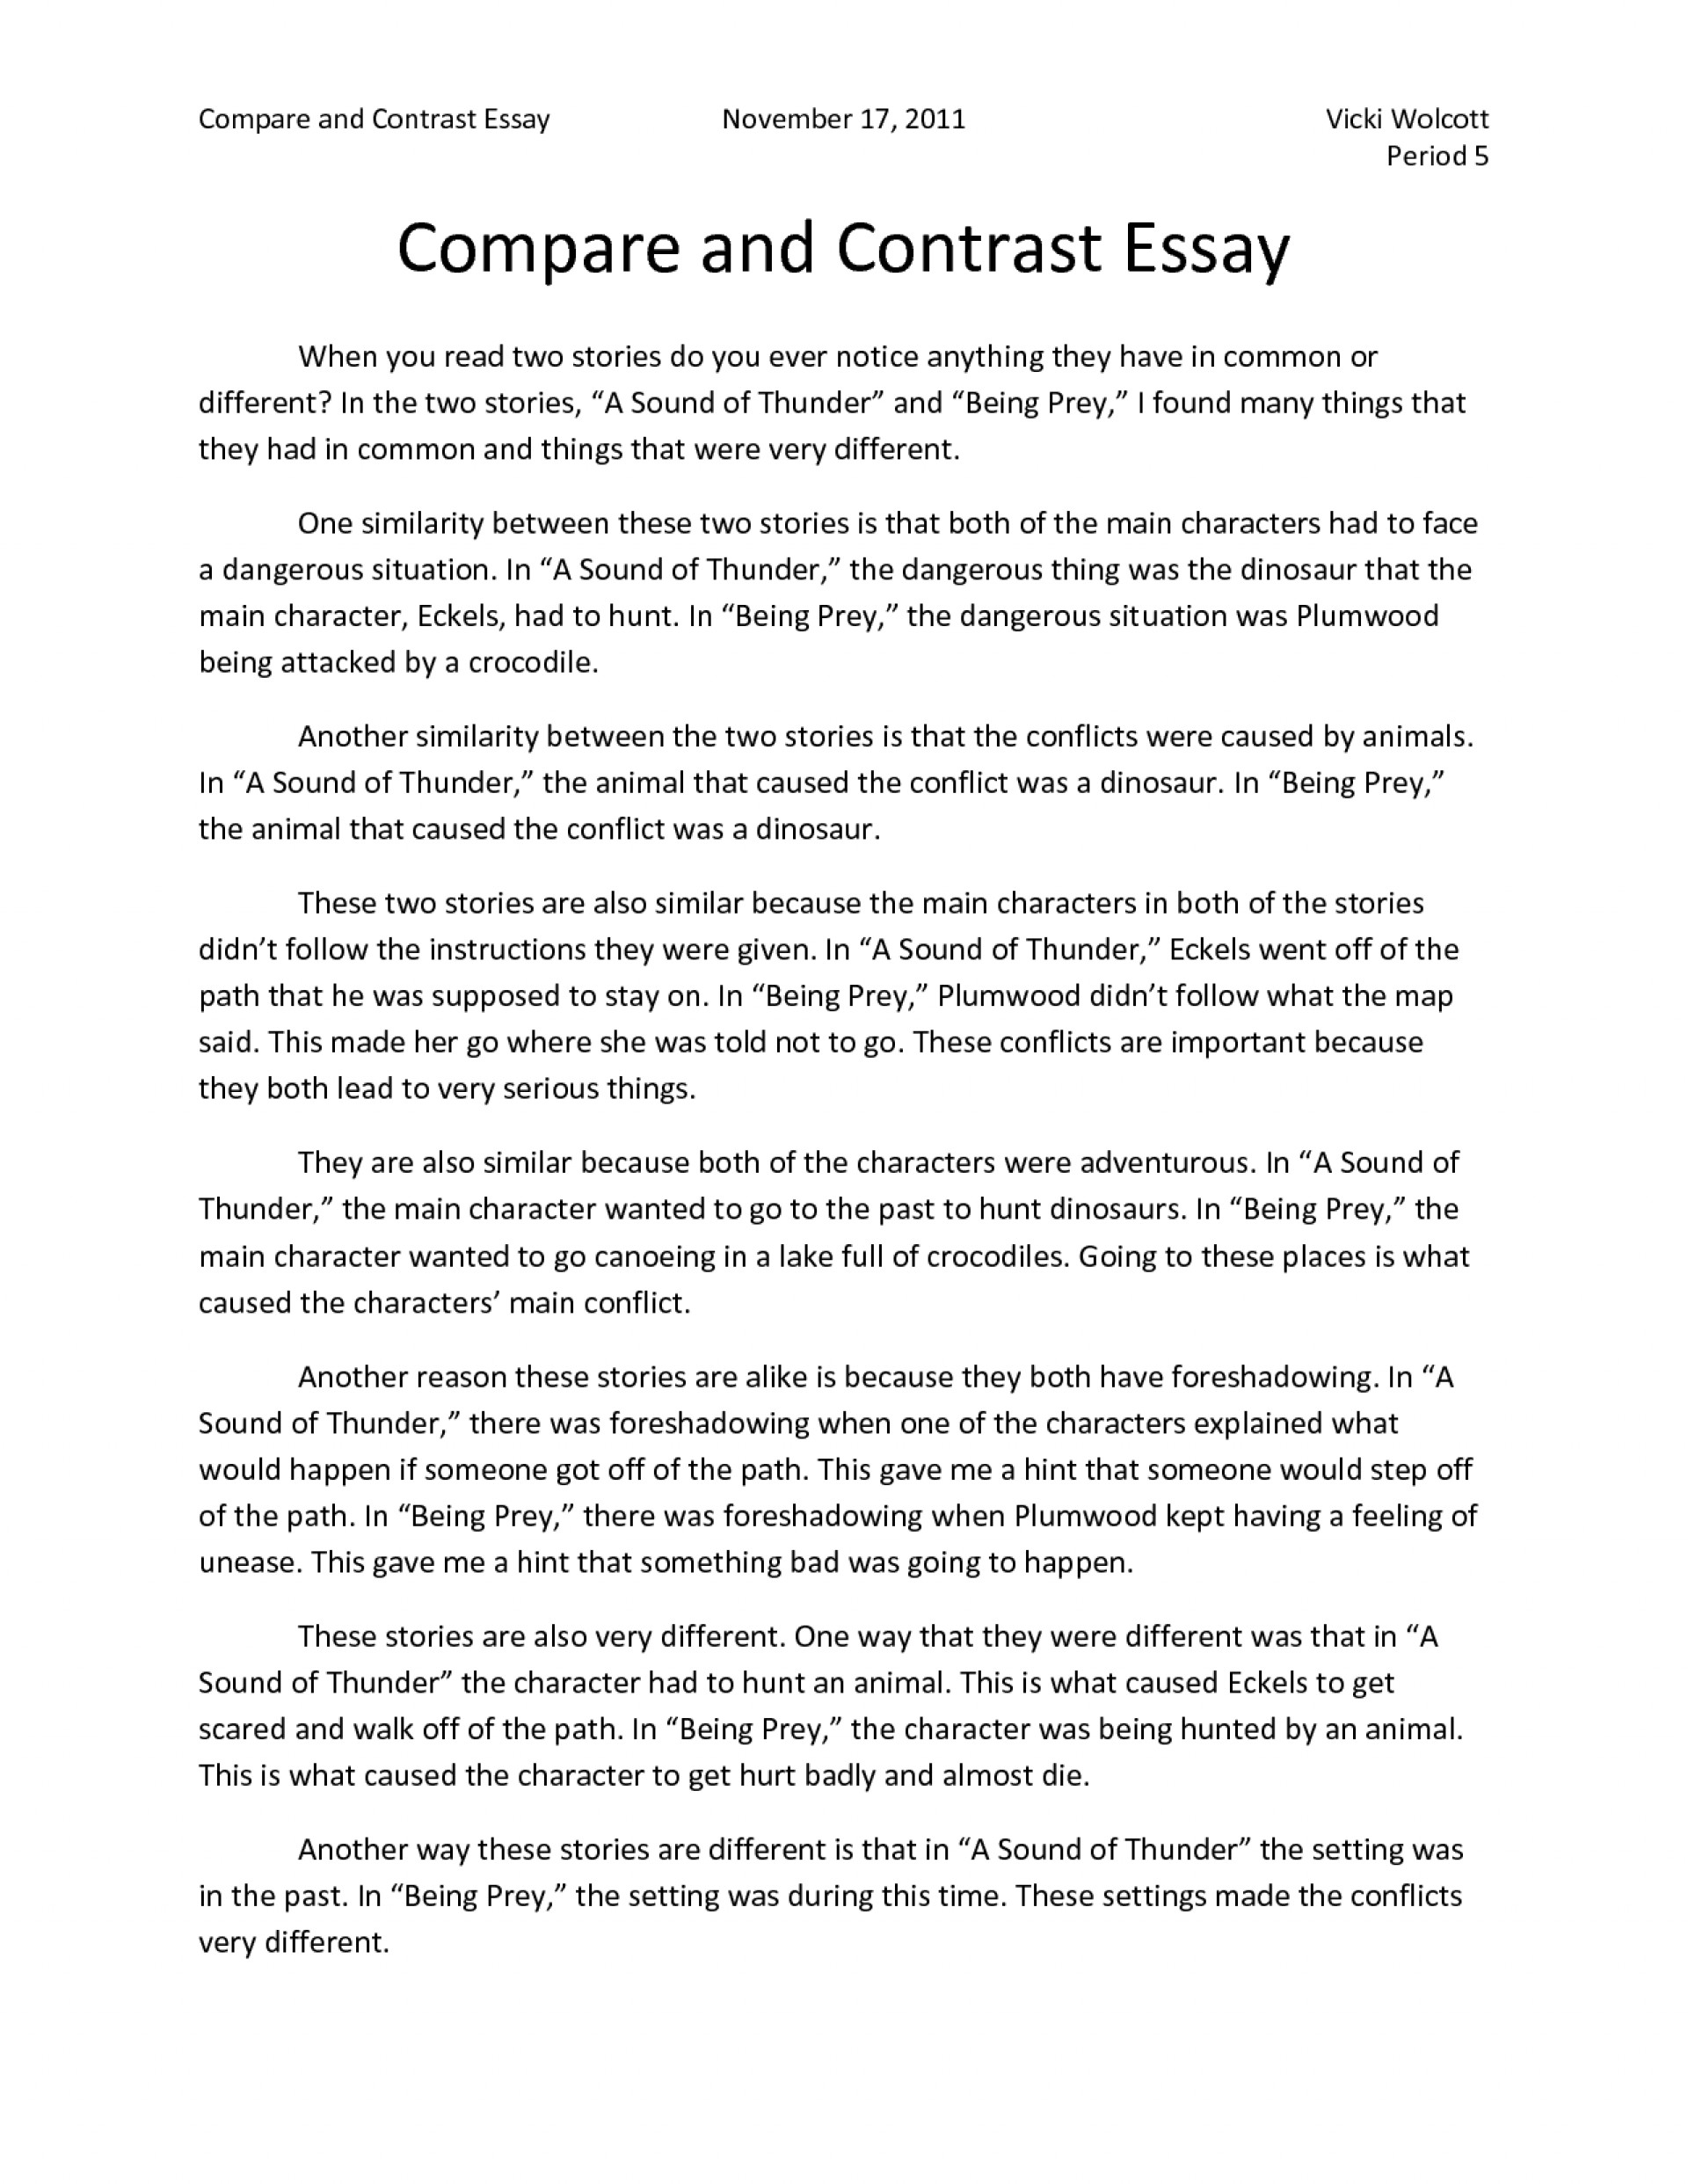 006 Gallery Compare And Contrast Essay Template Drawing Art Throughout Colleges Introduction Question Scholarship Free Edexcel Conclusion Extended Essays Best Rubric Elementary Topics Toefl 6th Grade 1920